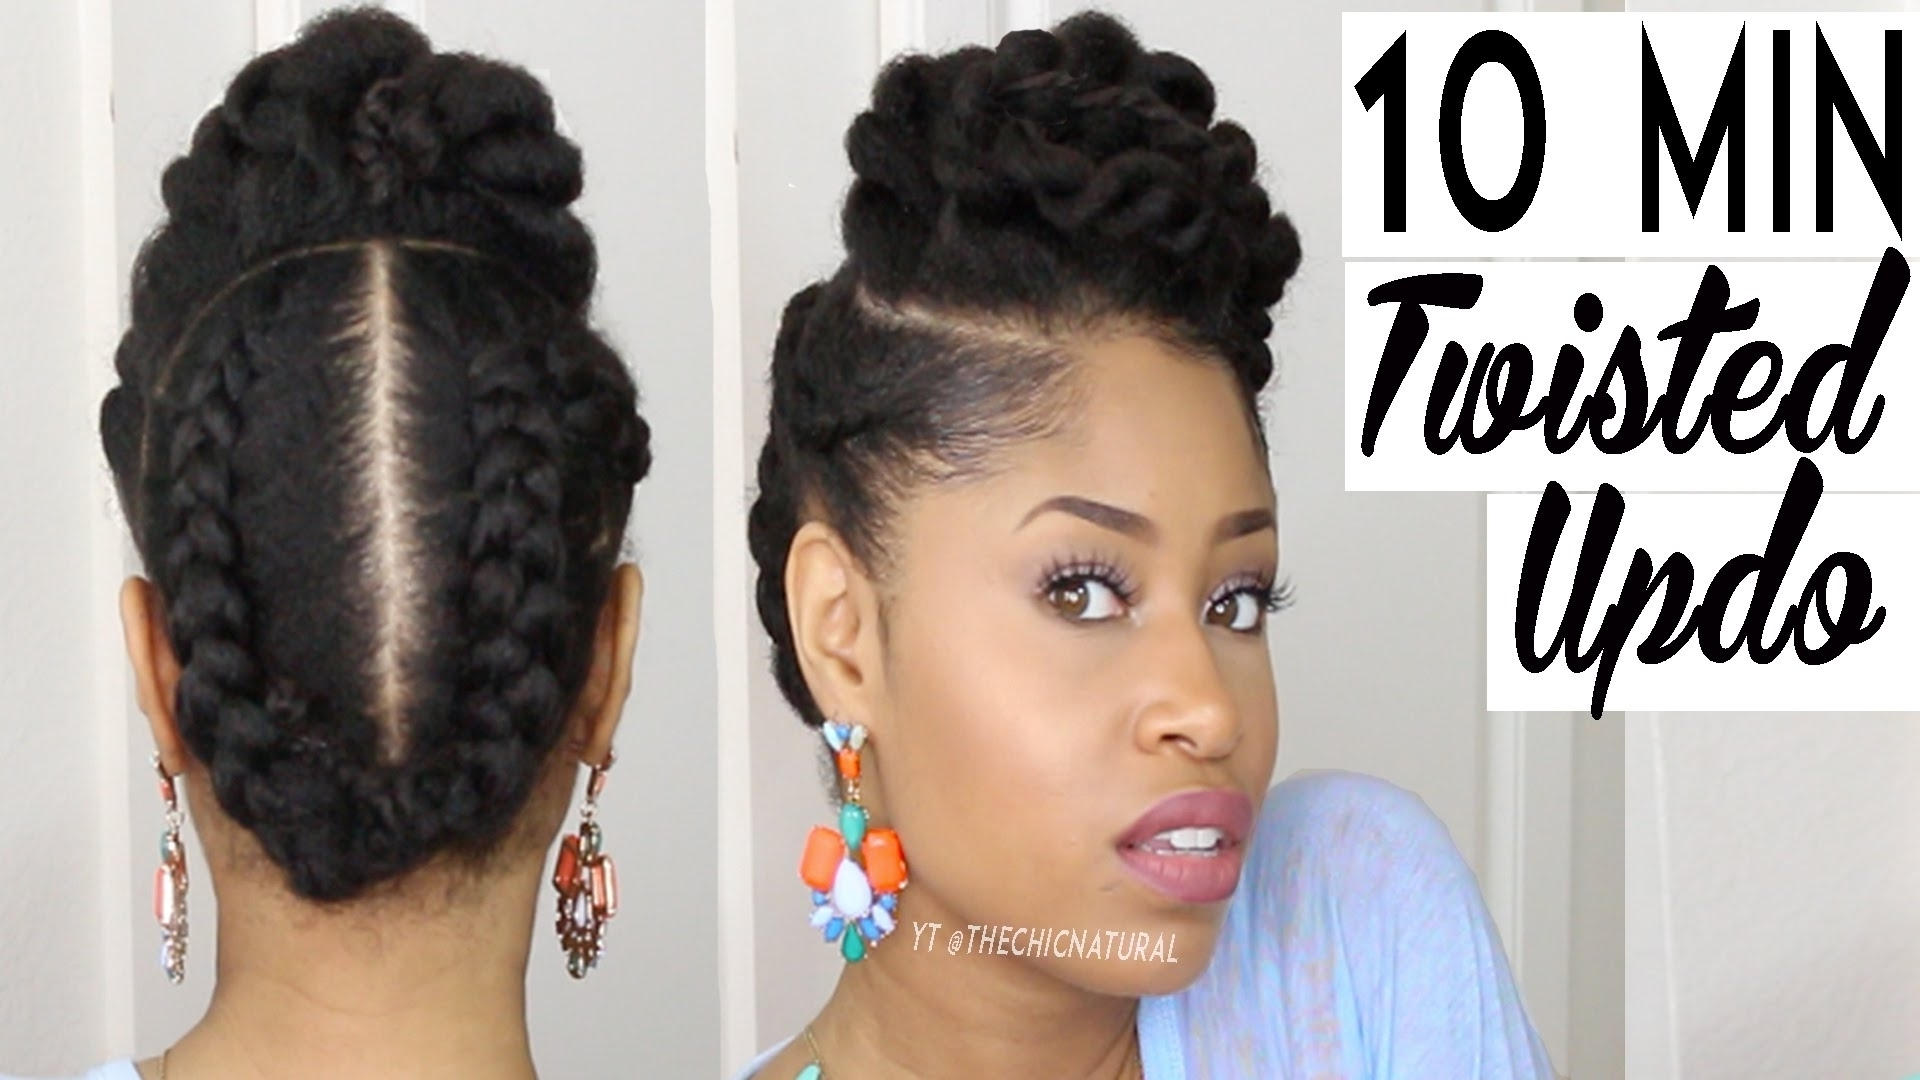 Image Result For Black Natural Hairstyles | Hair | Pinterest Regarding Quick Updo Hairstyles For Natural Black Hair (Gallery 9 of 15)